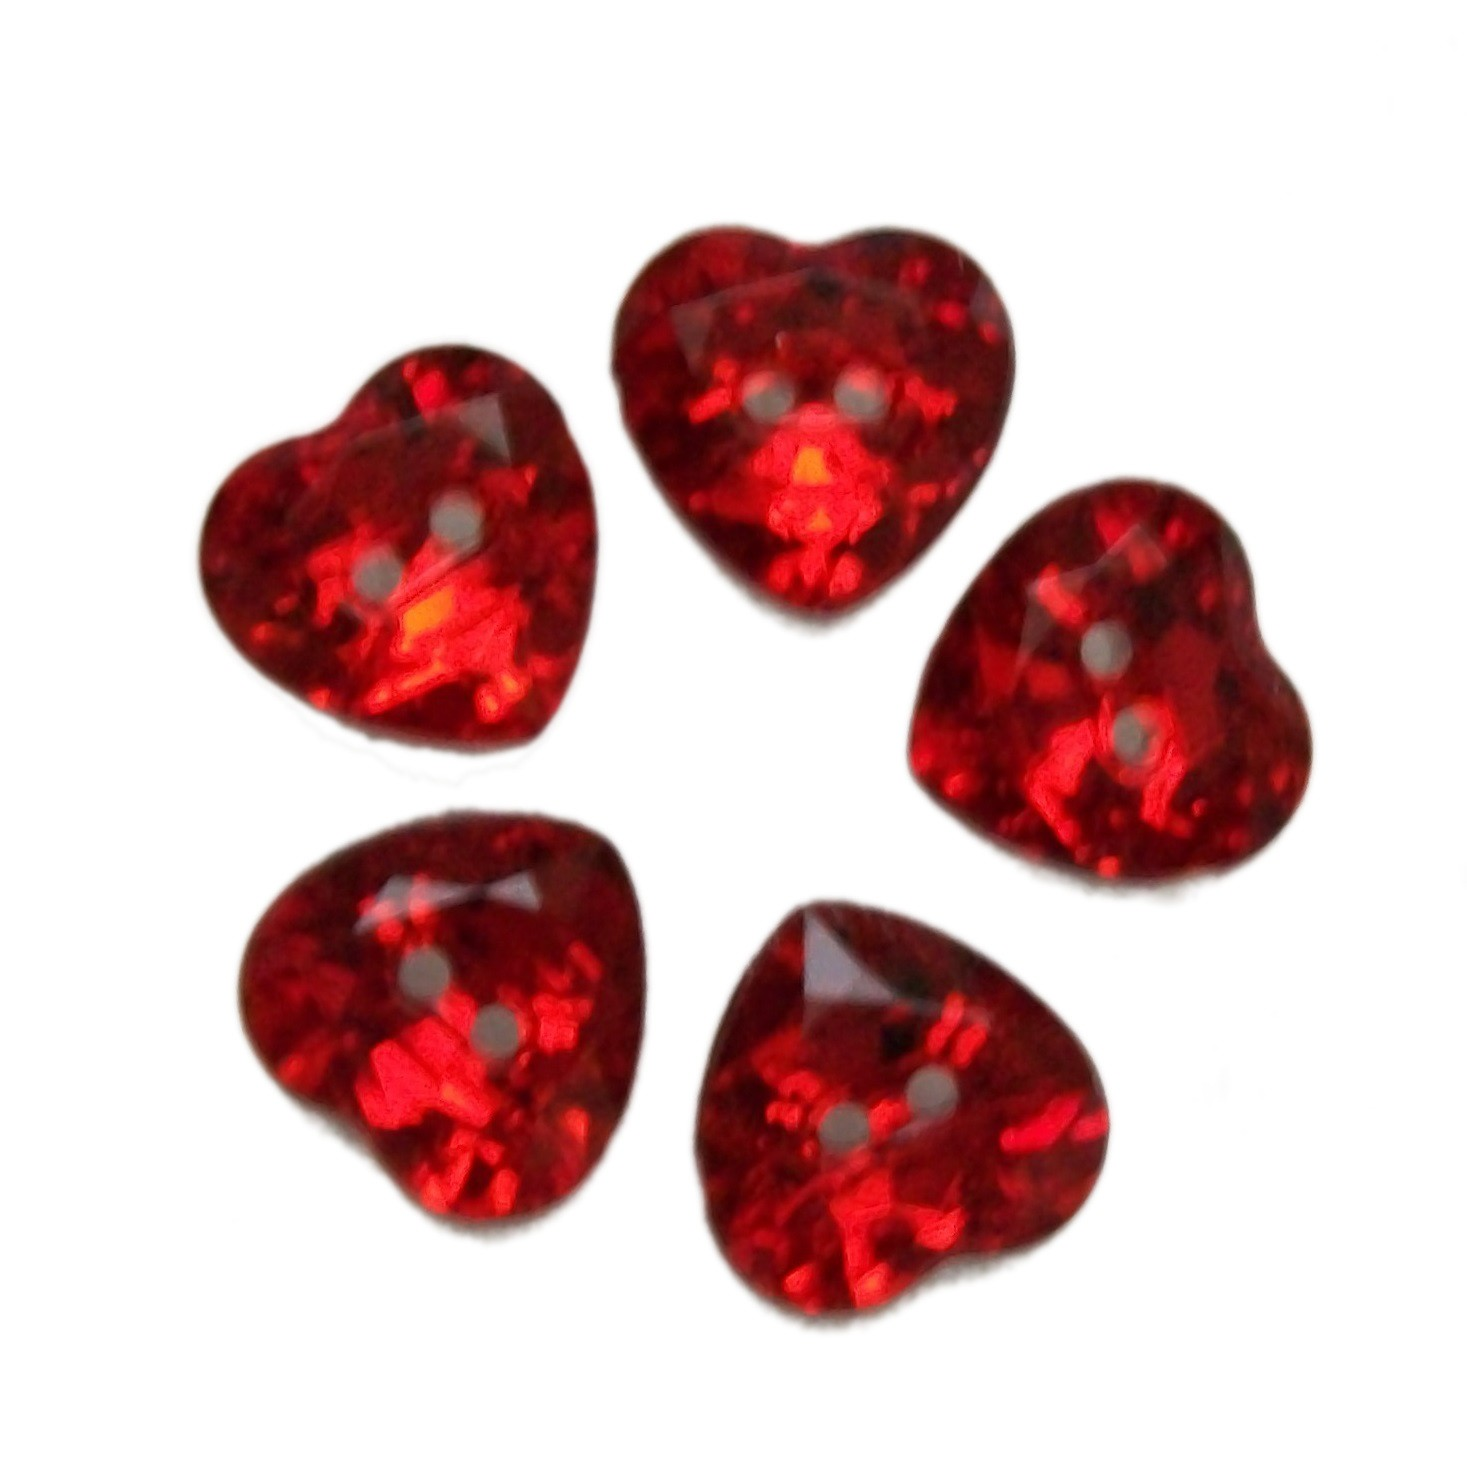 Acrylic Crystal Effect Heart Shape Buttons 32mm Red Pack of 5